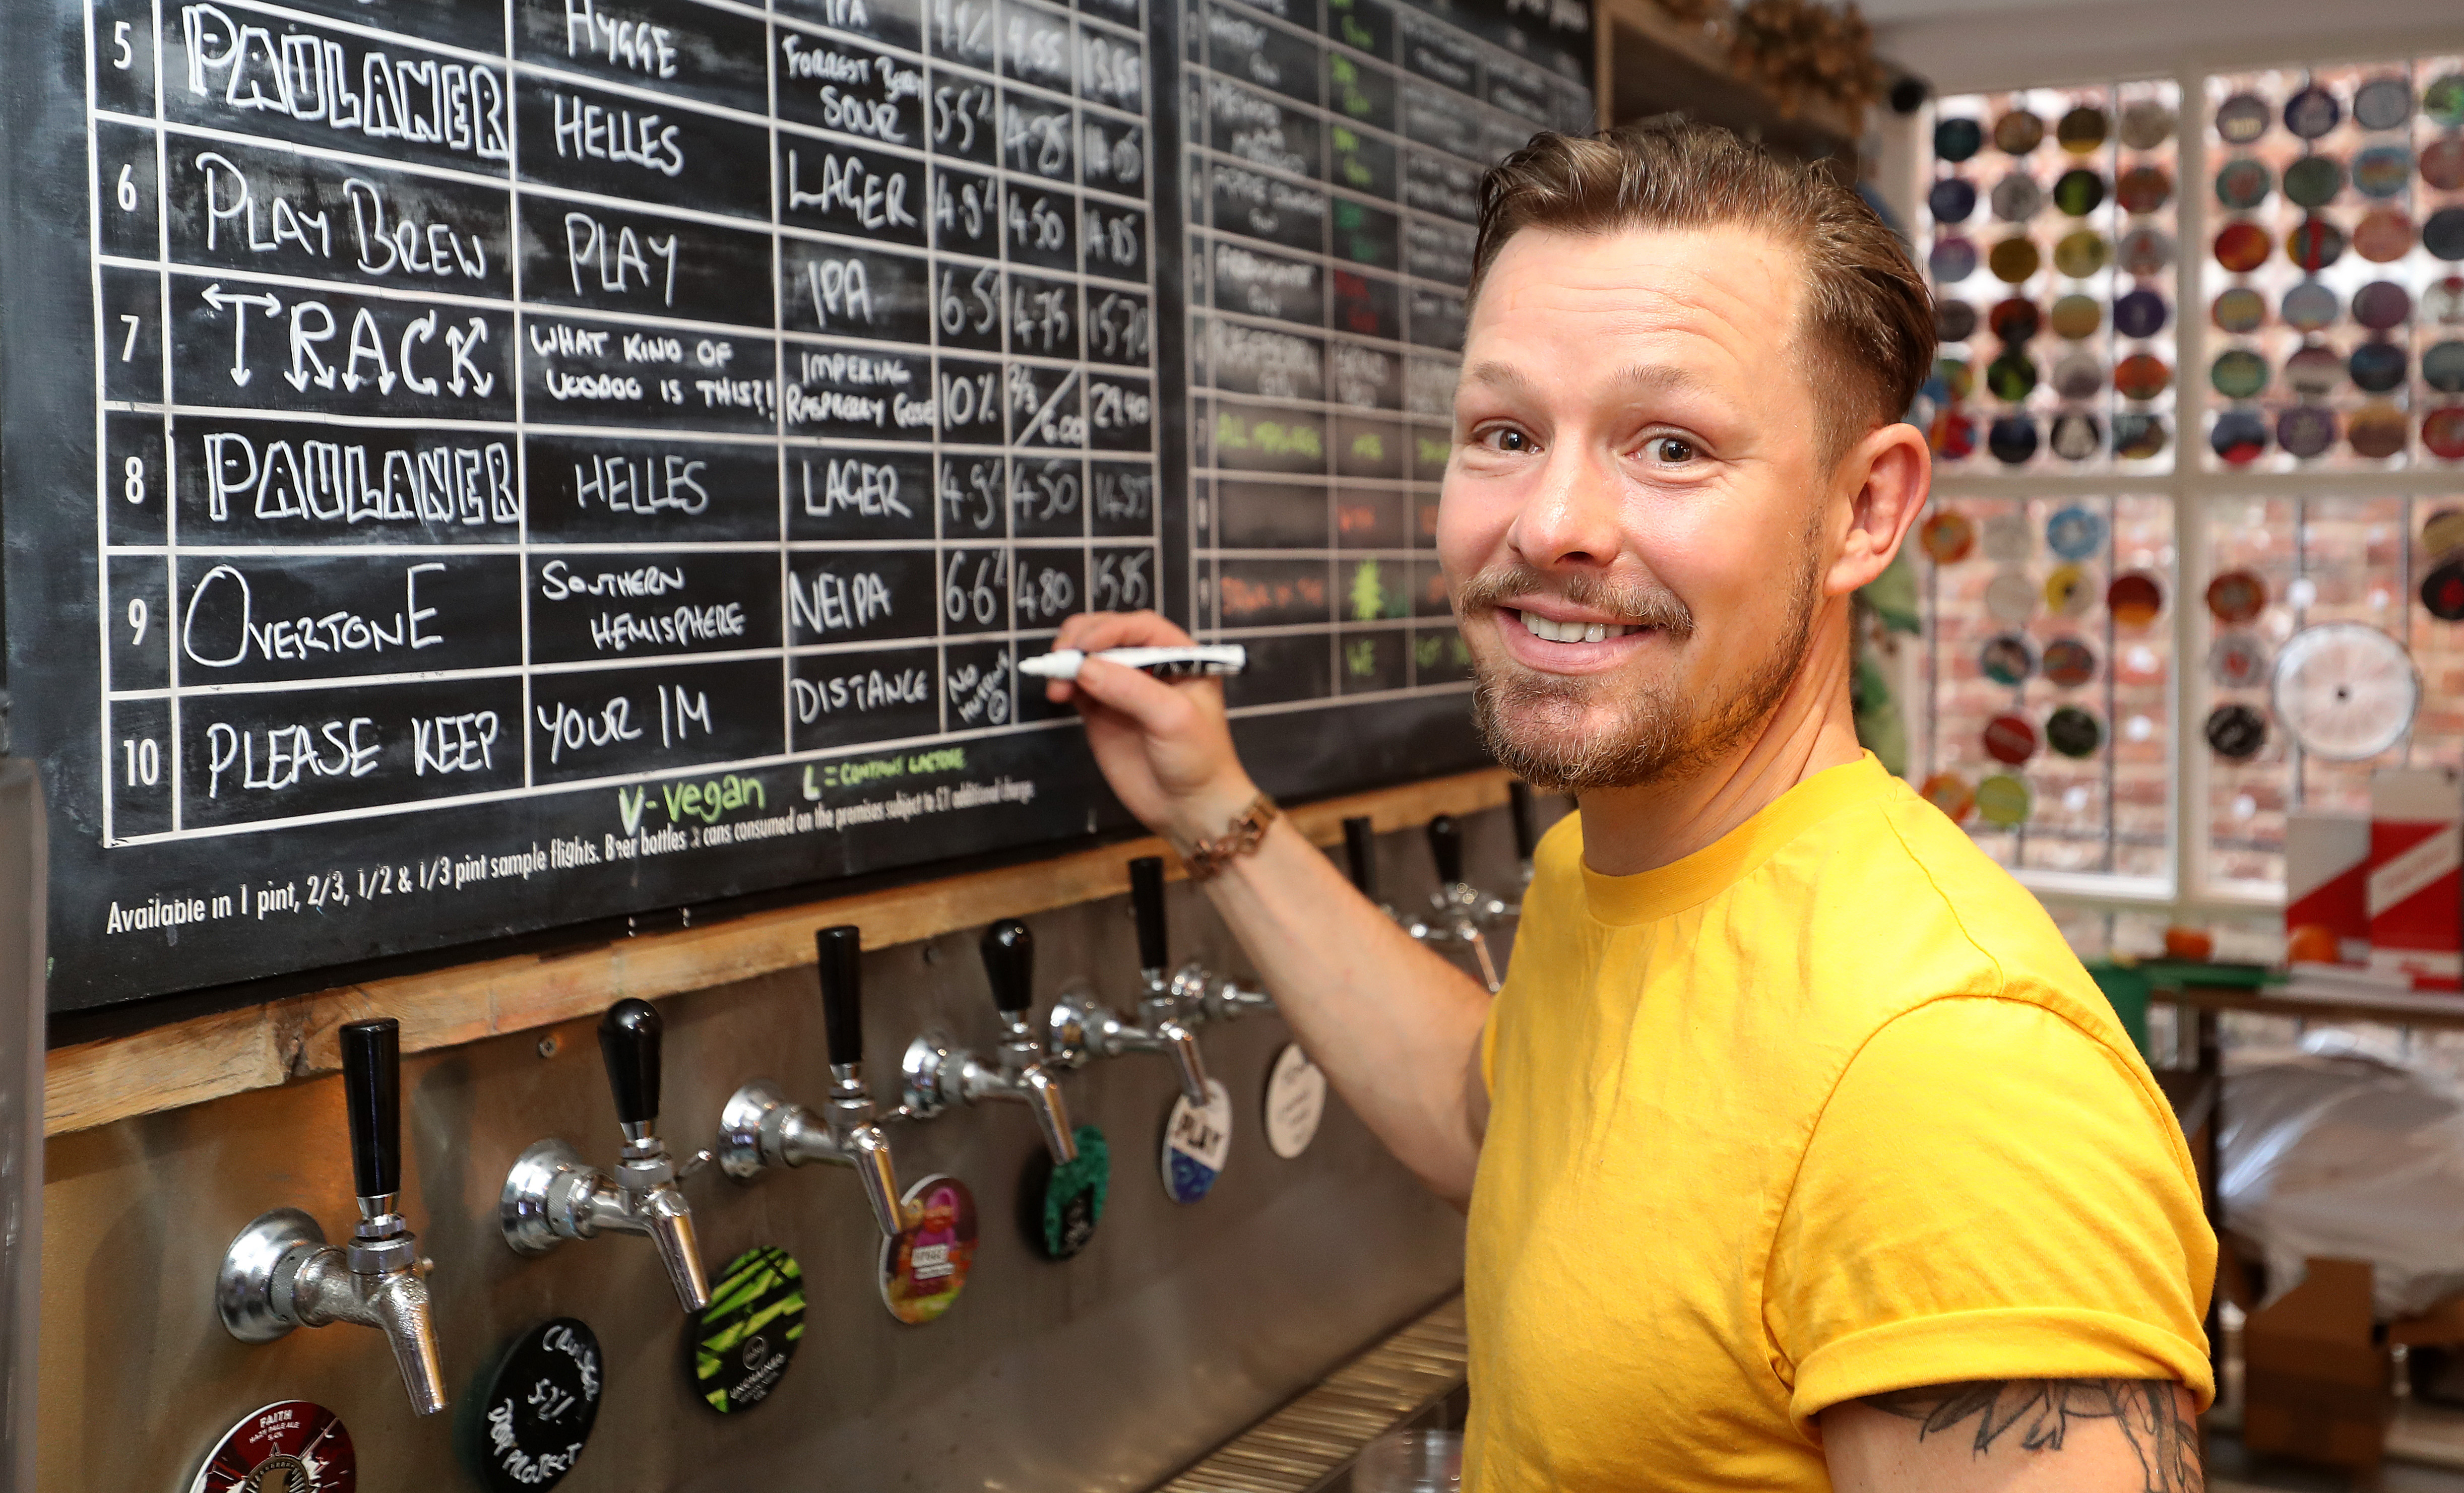 Former Coronation Street actor Adam Rickitt starts to prepare his bar, Dexter & Jones, in Knutsford, Cheshire, for reopening after the Government announced restrictions on bars and pubs will be eased from July 4th. The bar has been open for take away orders during lockdown.